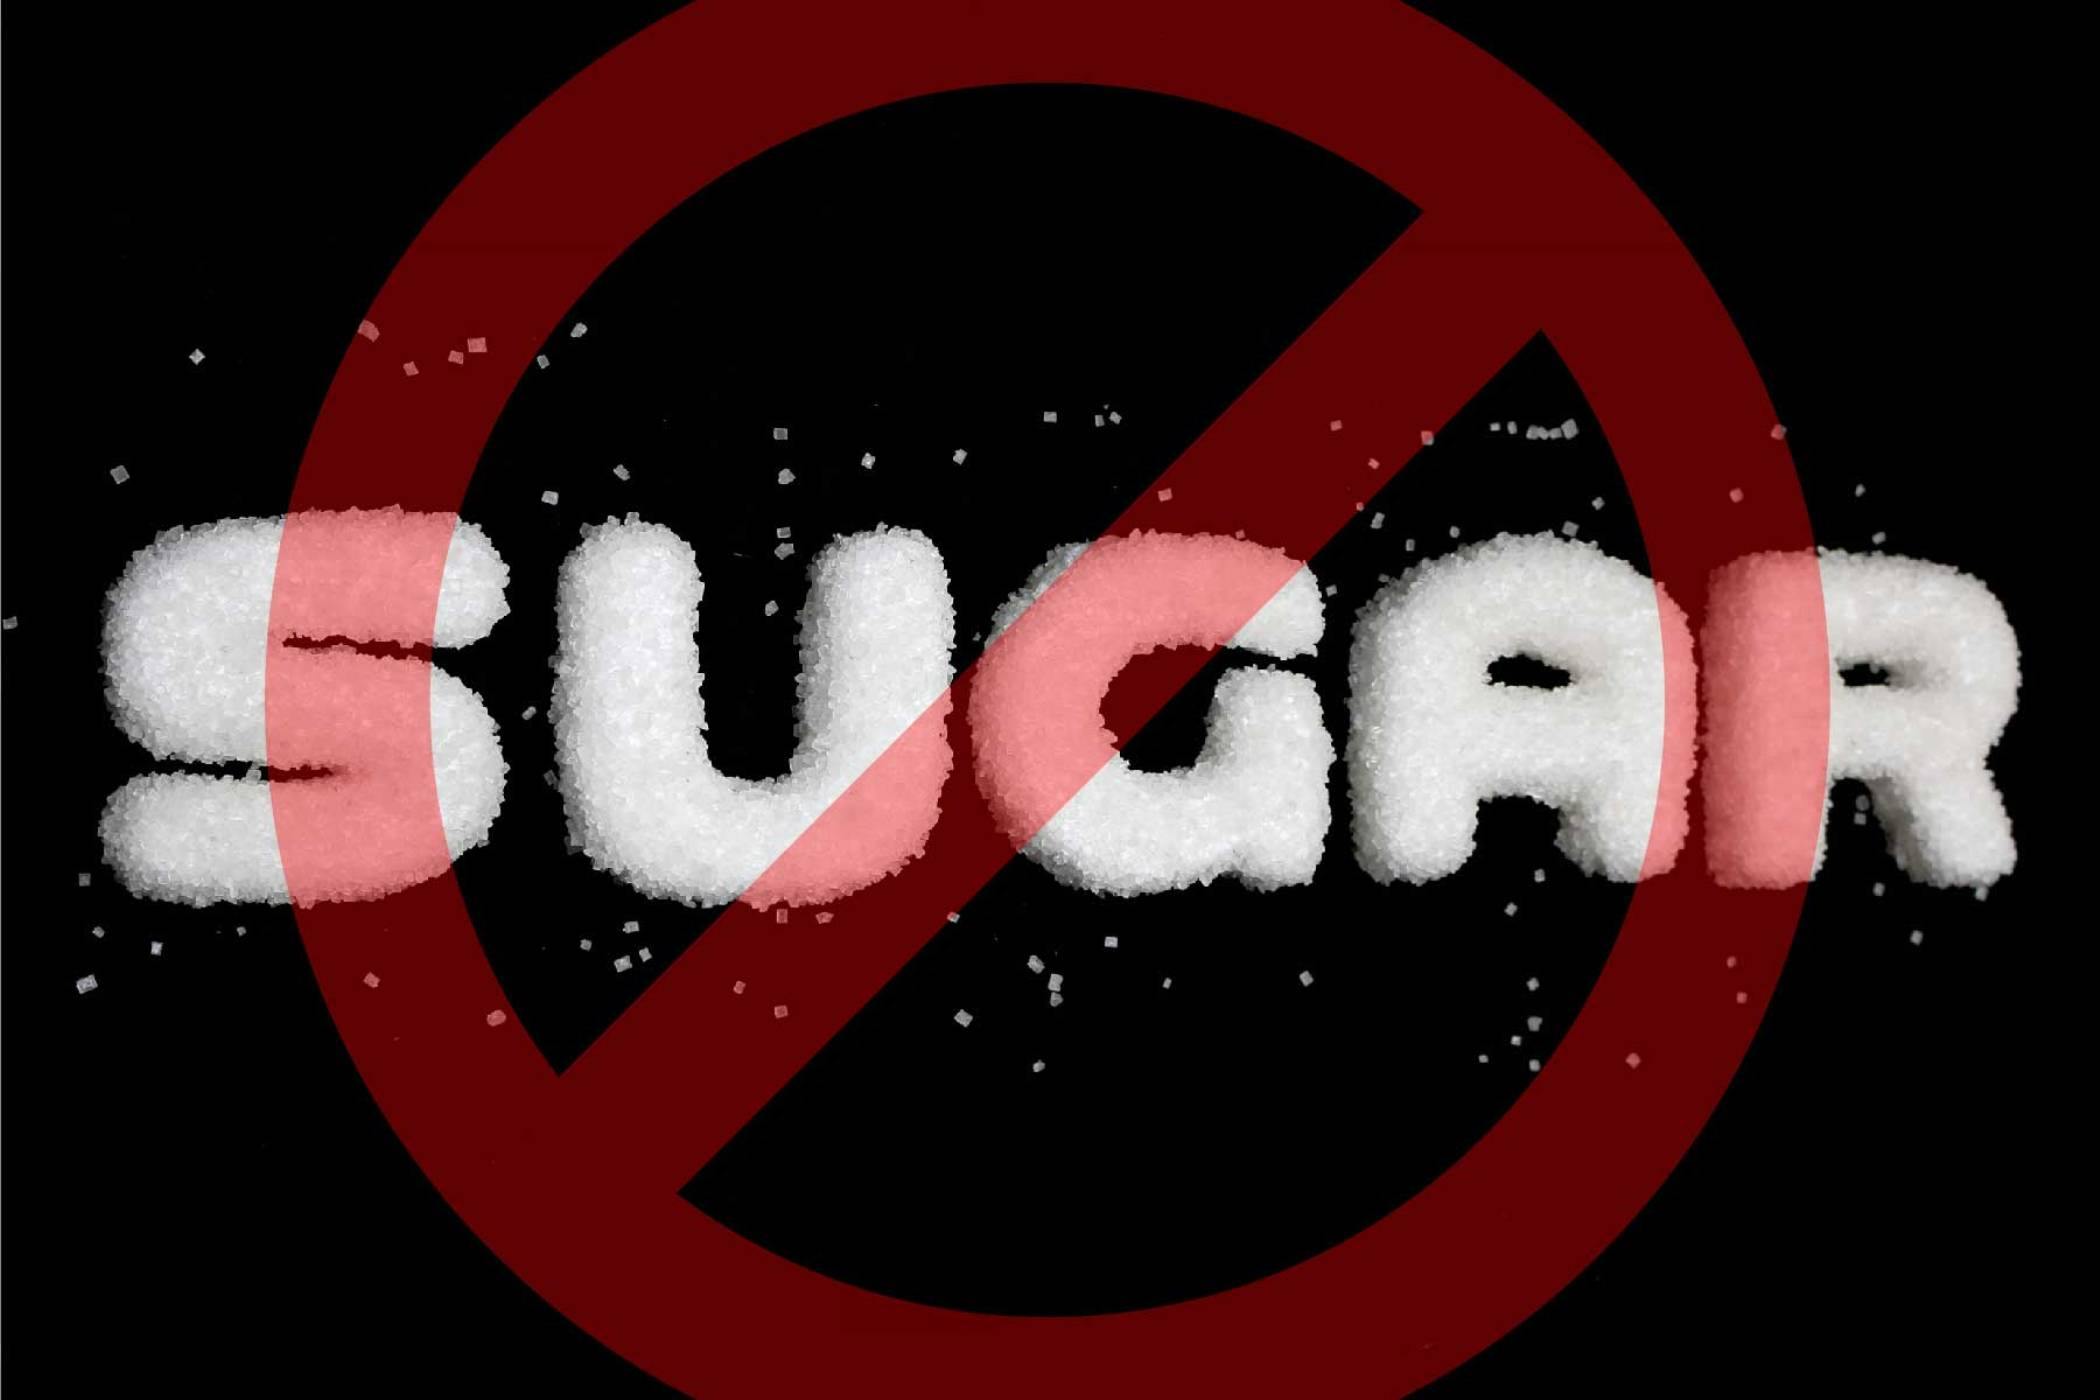 The word SUGAR spelled out in sugar crystals with a red o entry sign placed on top